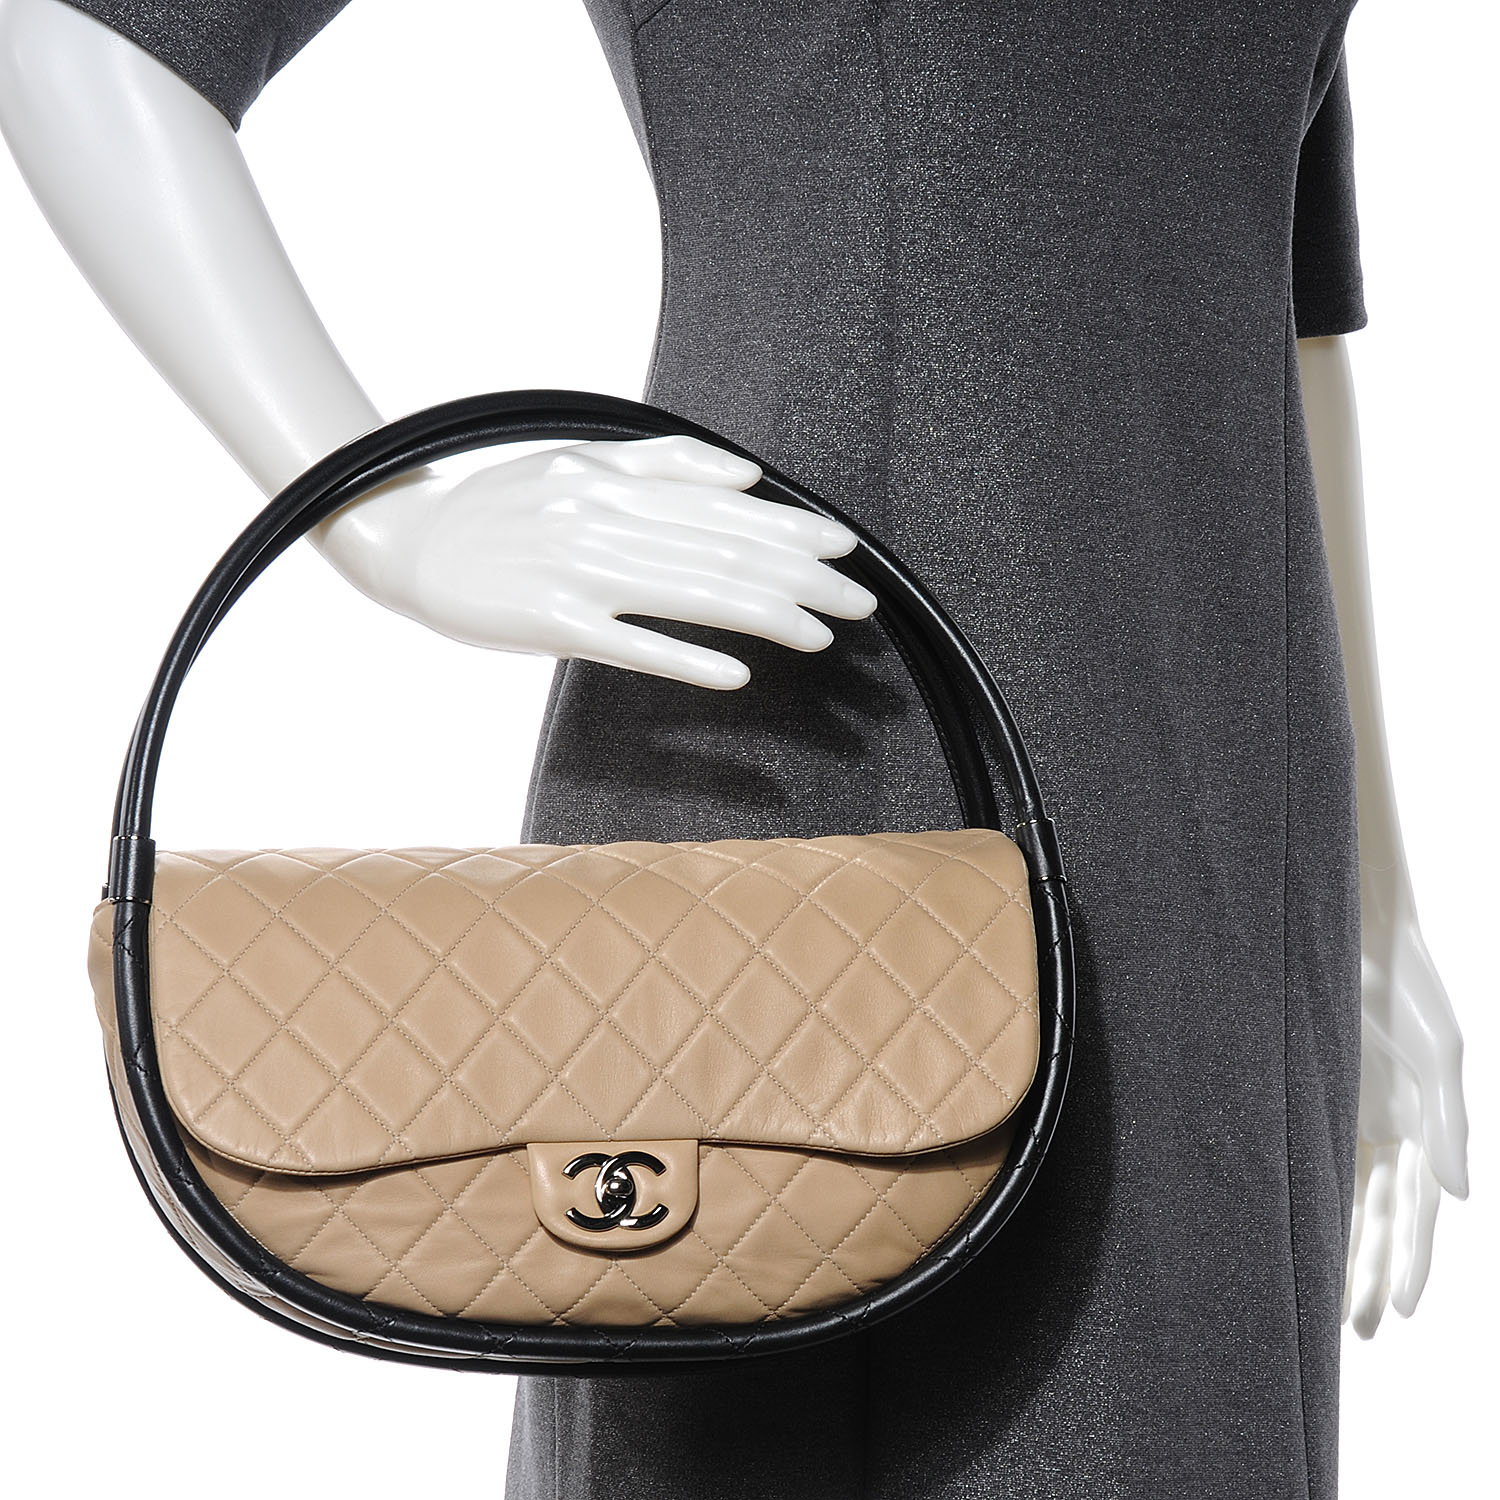 Chanel Beige Hula Hoop Bag